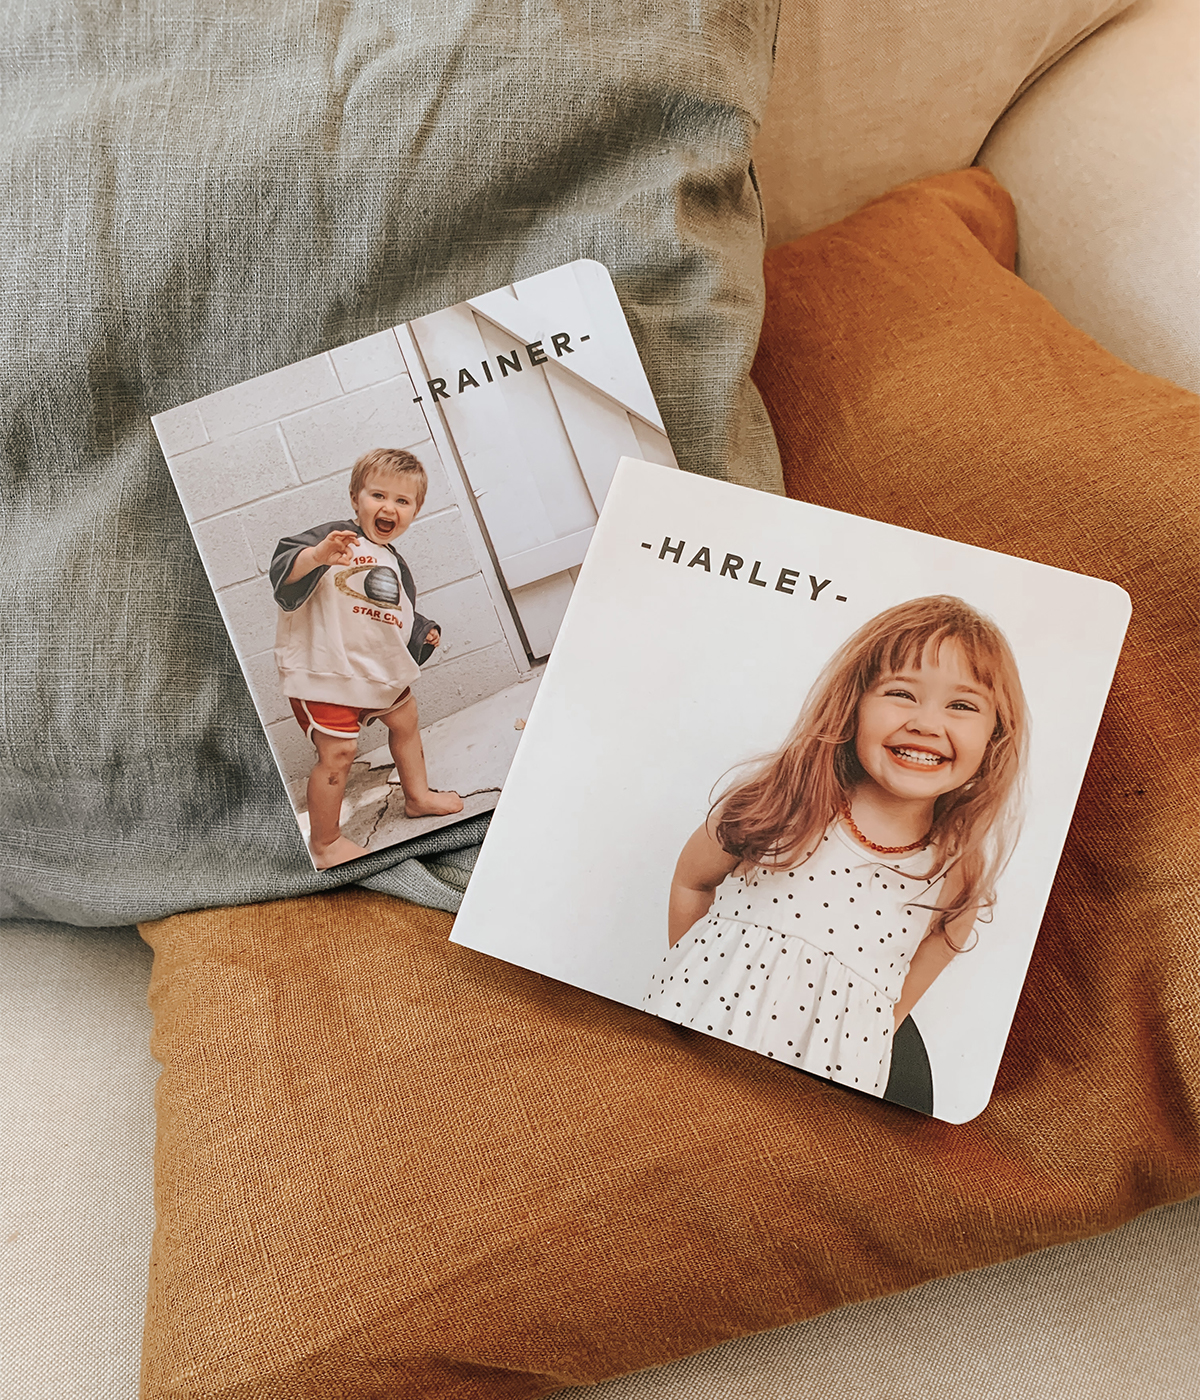 Board books with kids' names and photos on the cover